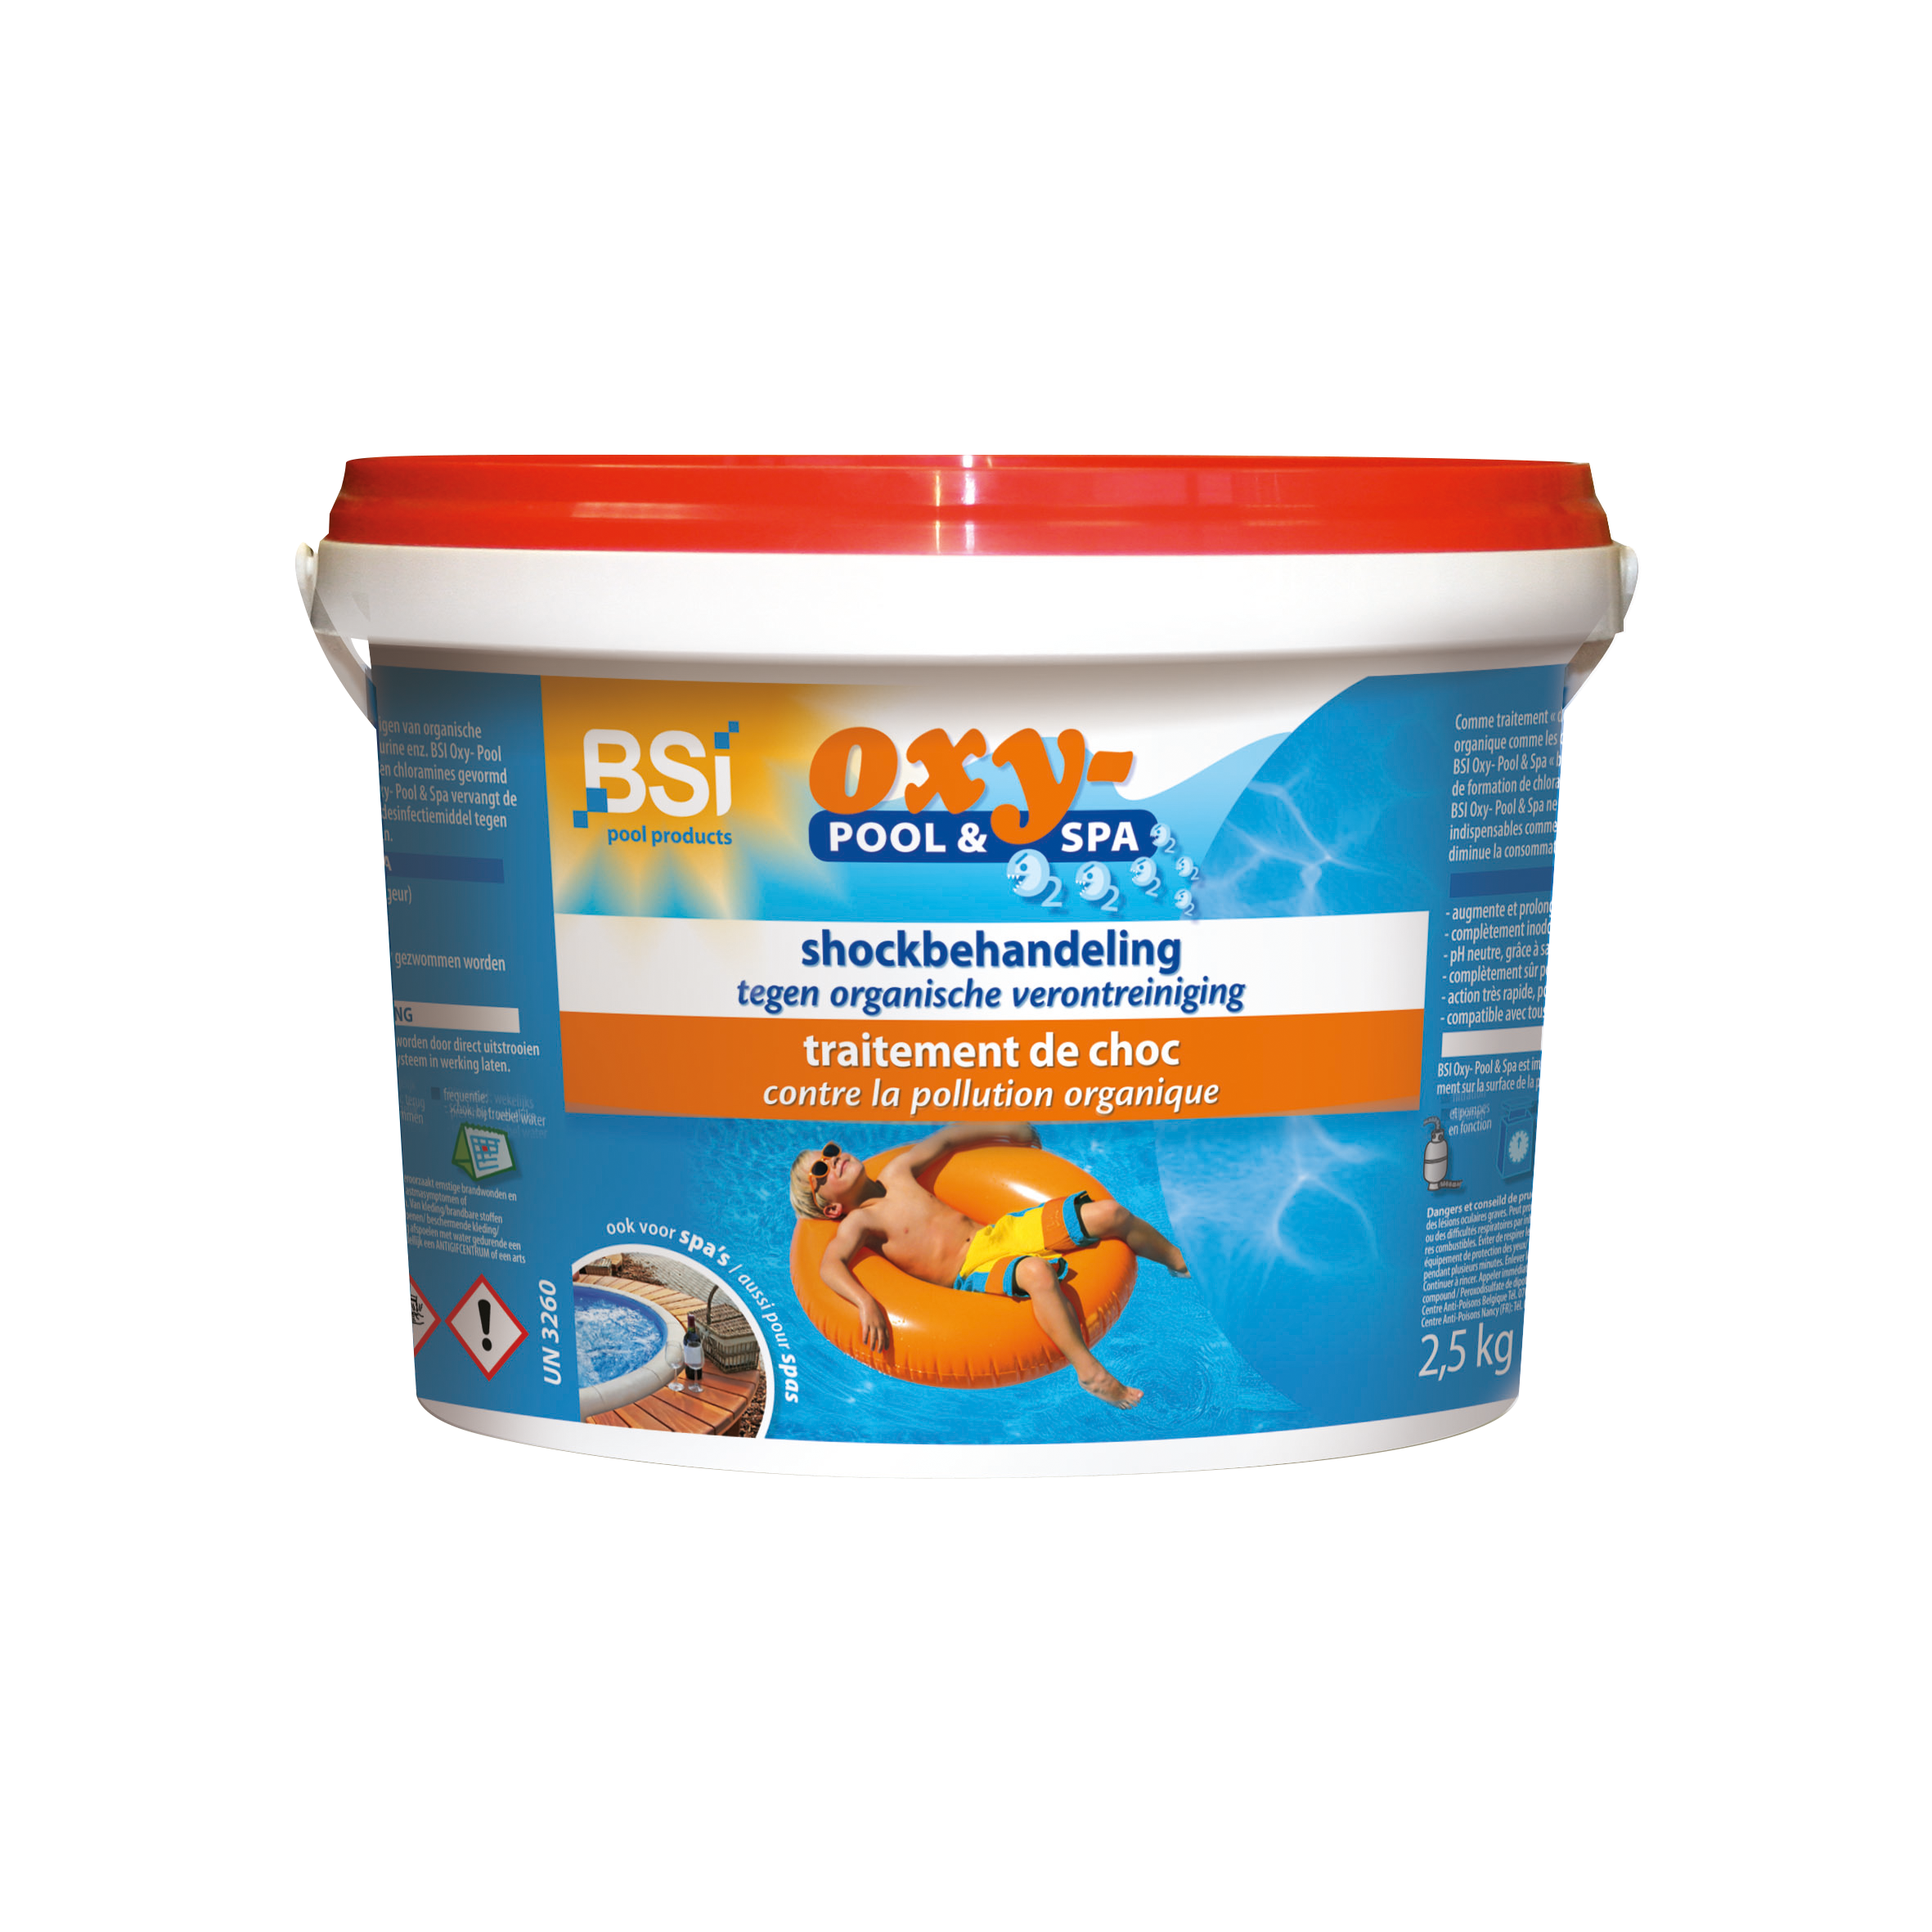 Oxy-pool & spa 2,5kg image